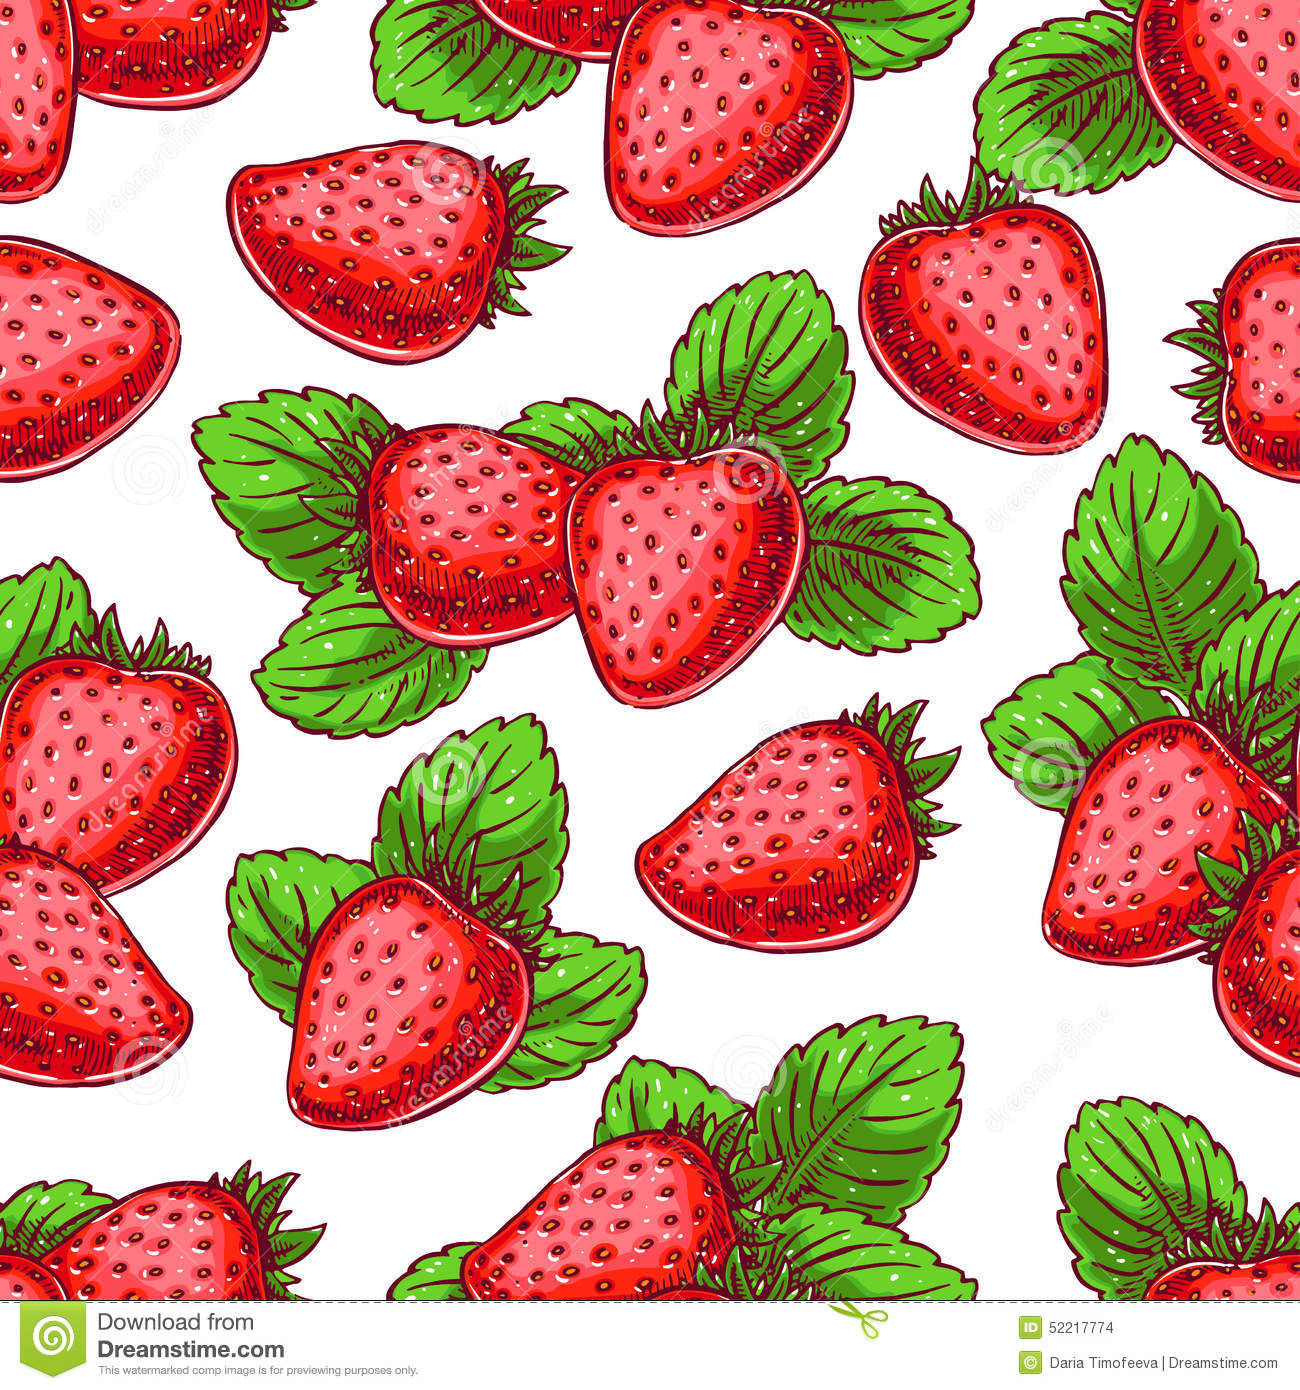 Background with delicious strawberries